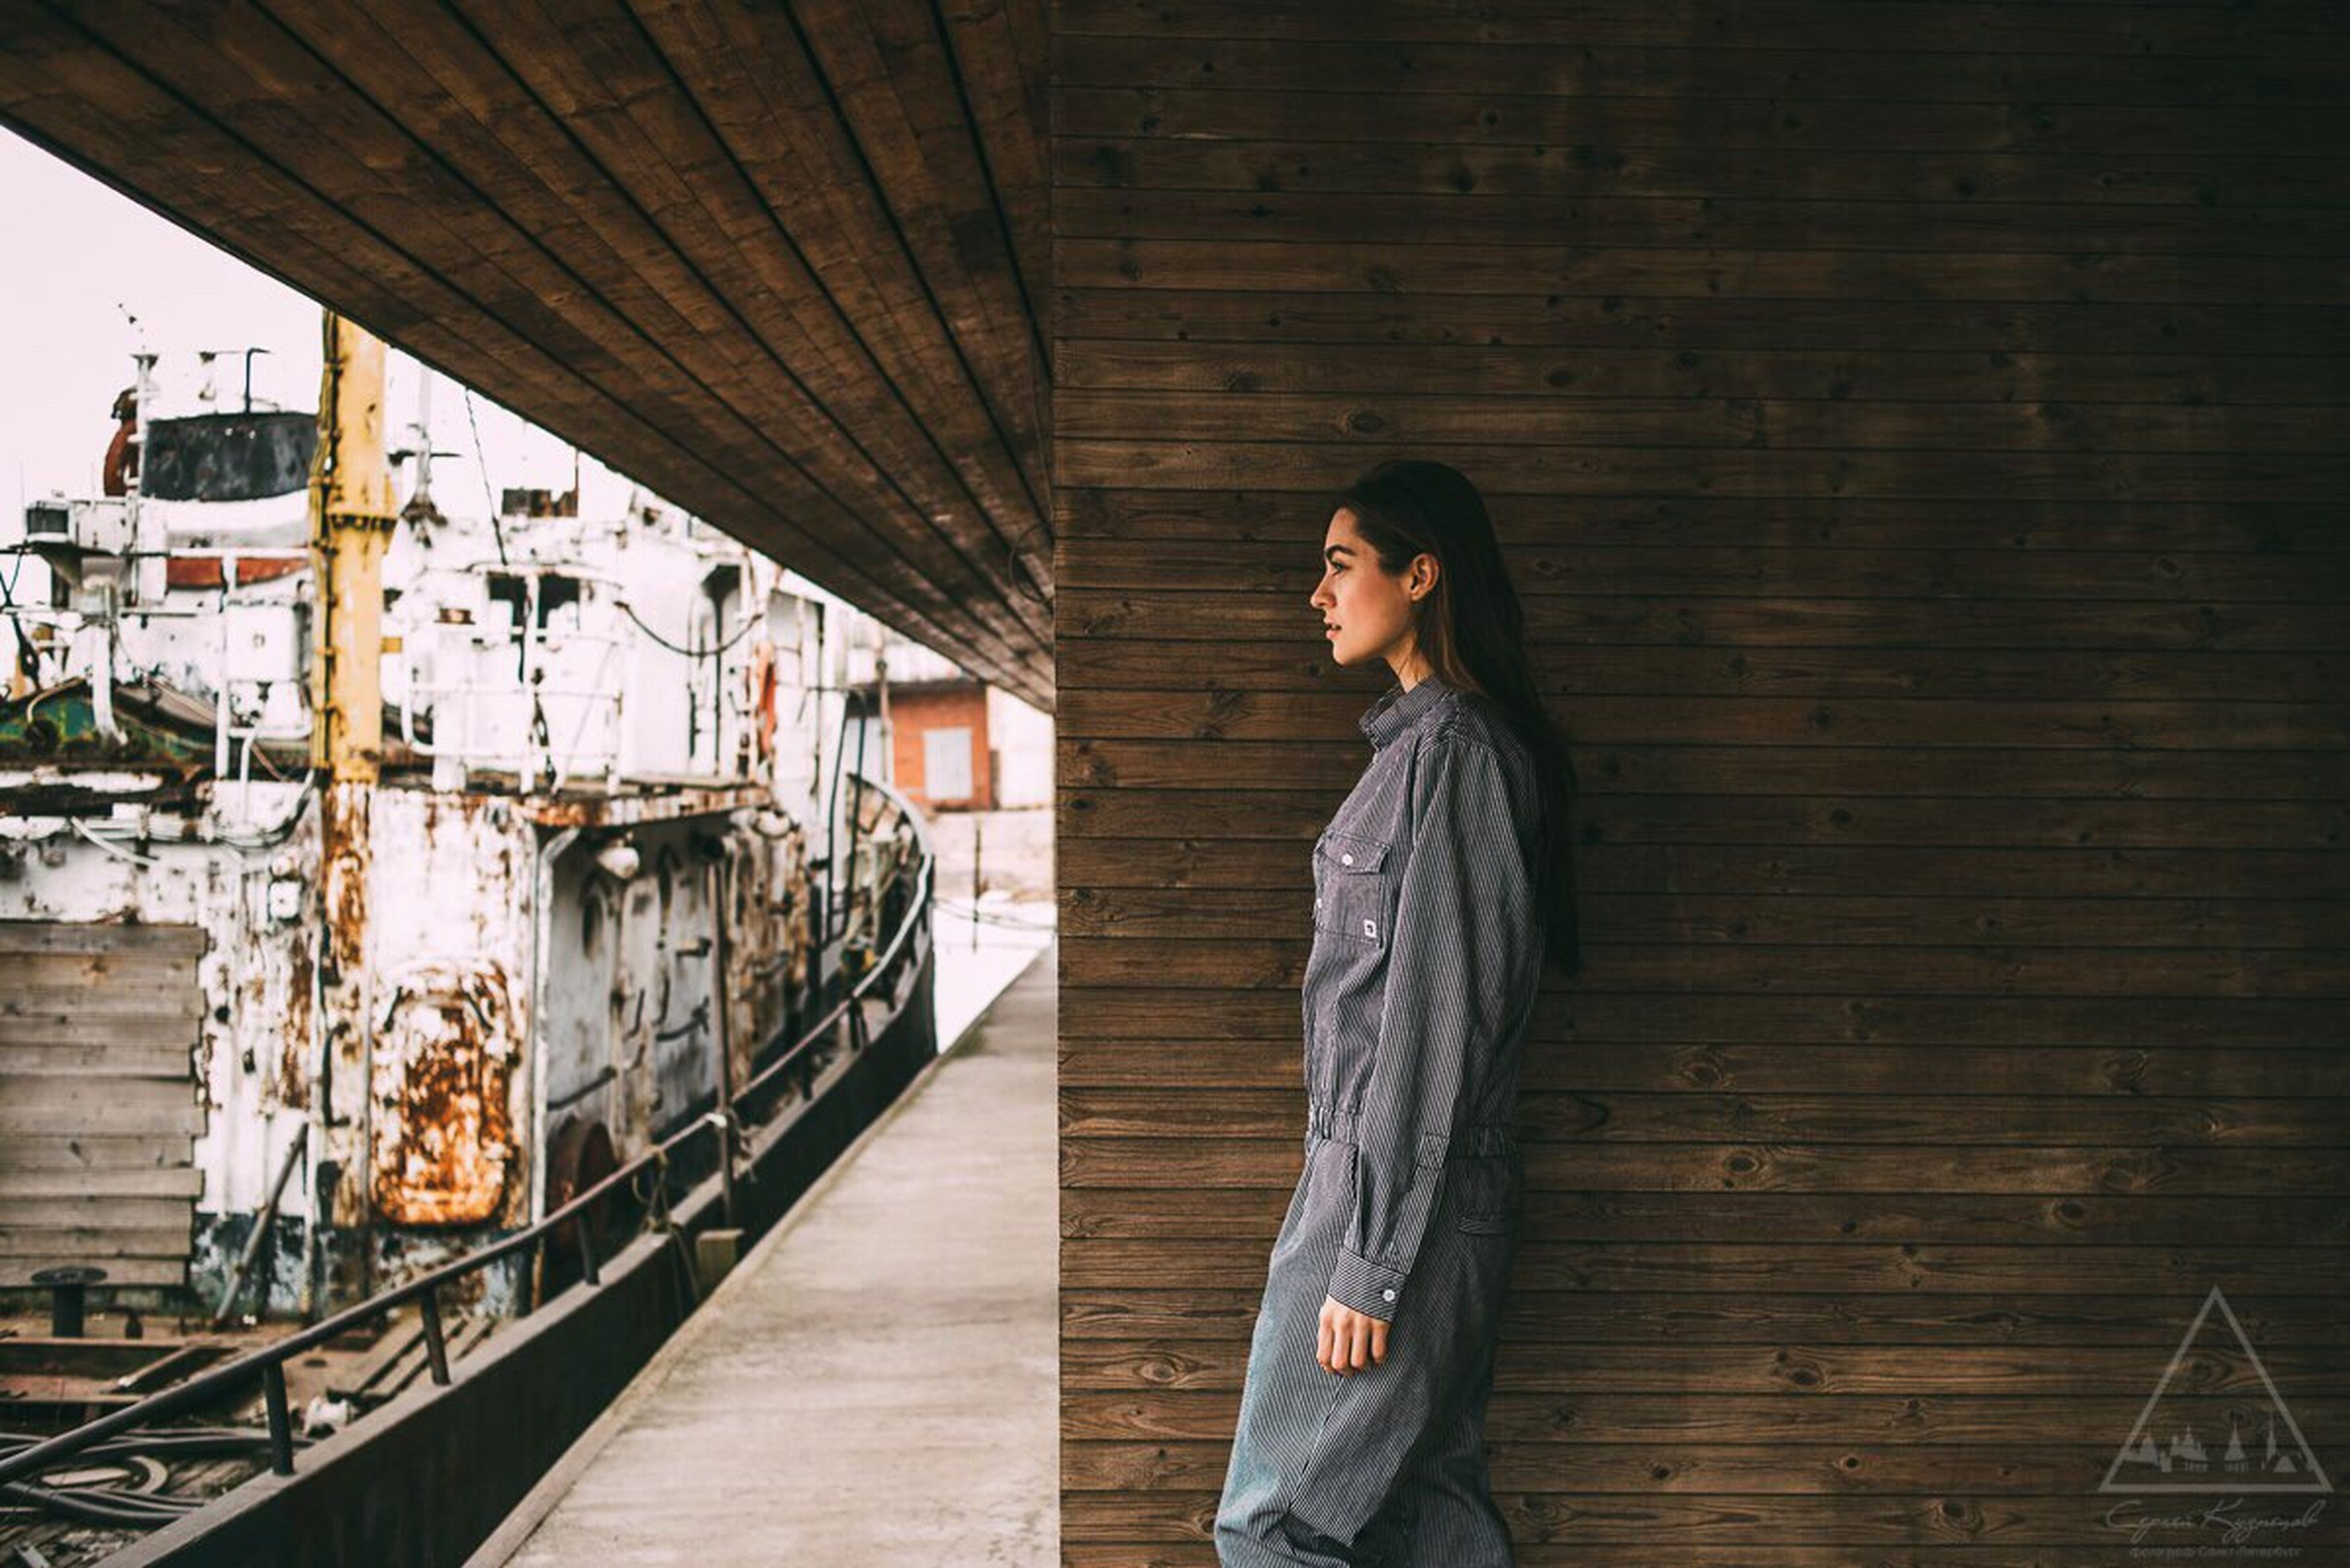 young adult, lifestyles, architecture, person, built structure, casual clothing, young women, standing, leisure activity, front view, looking at camera, full length, portrait, building exterior, wall - building feature, steps, railing